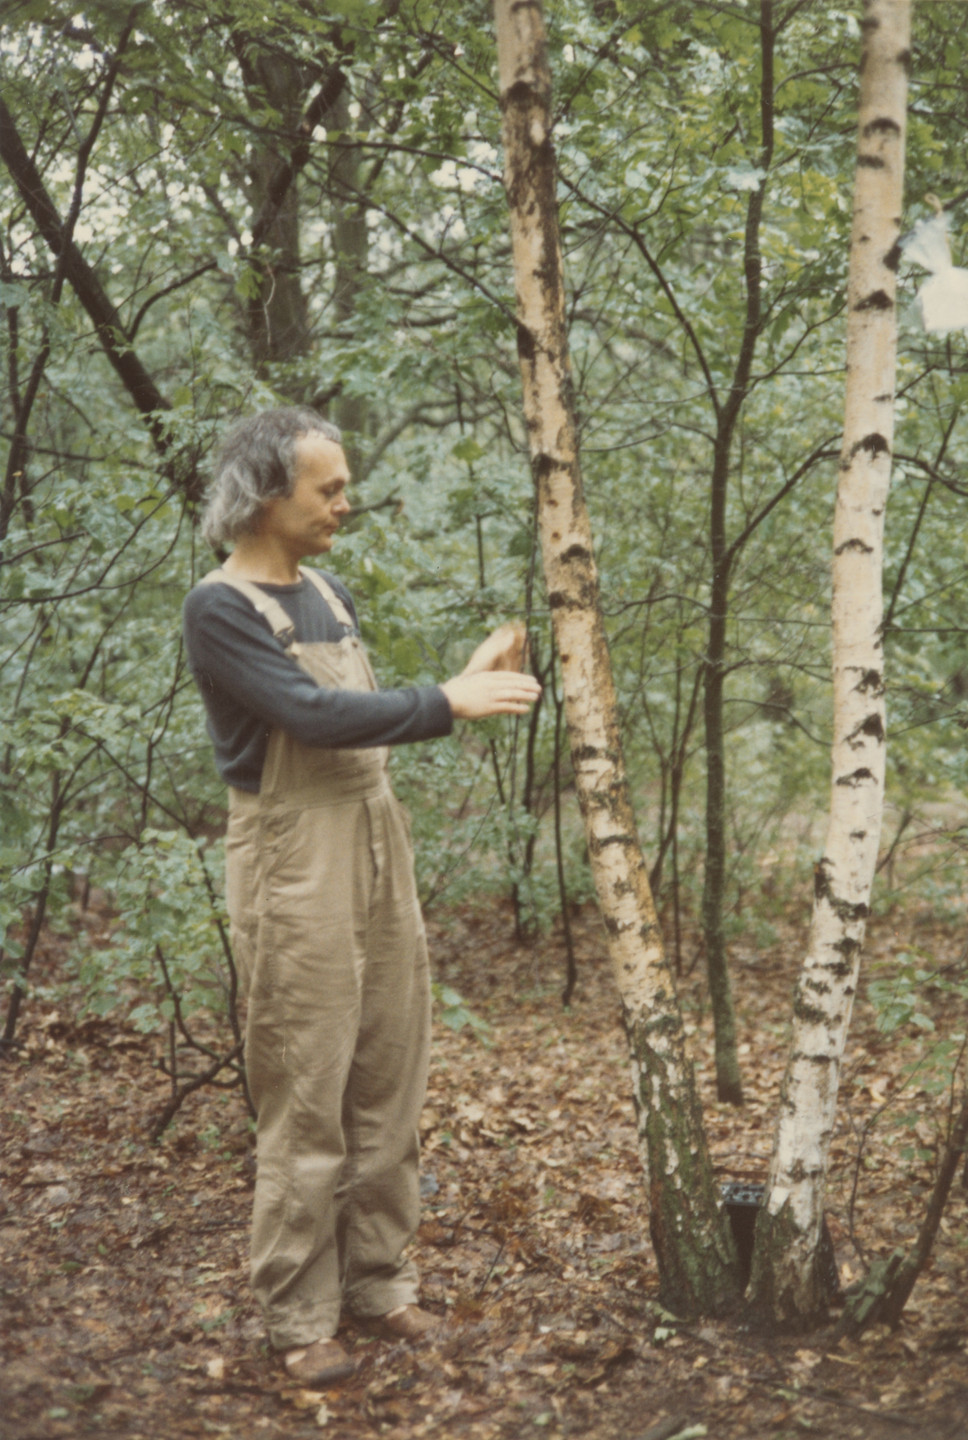 Milan Knížák. Friendship with a tree from Performance Files. 1980